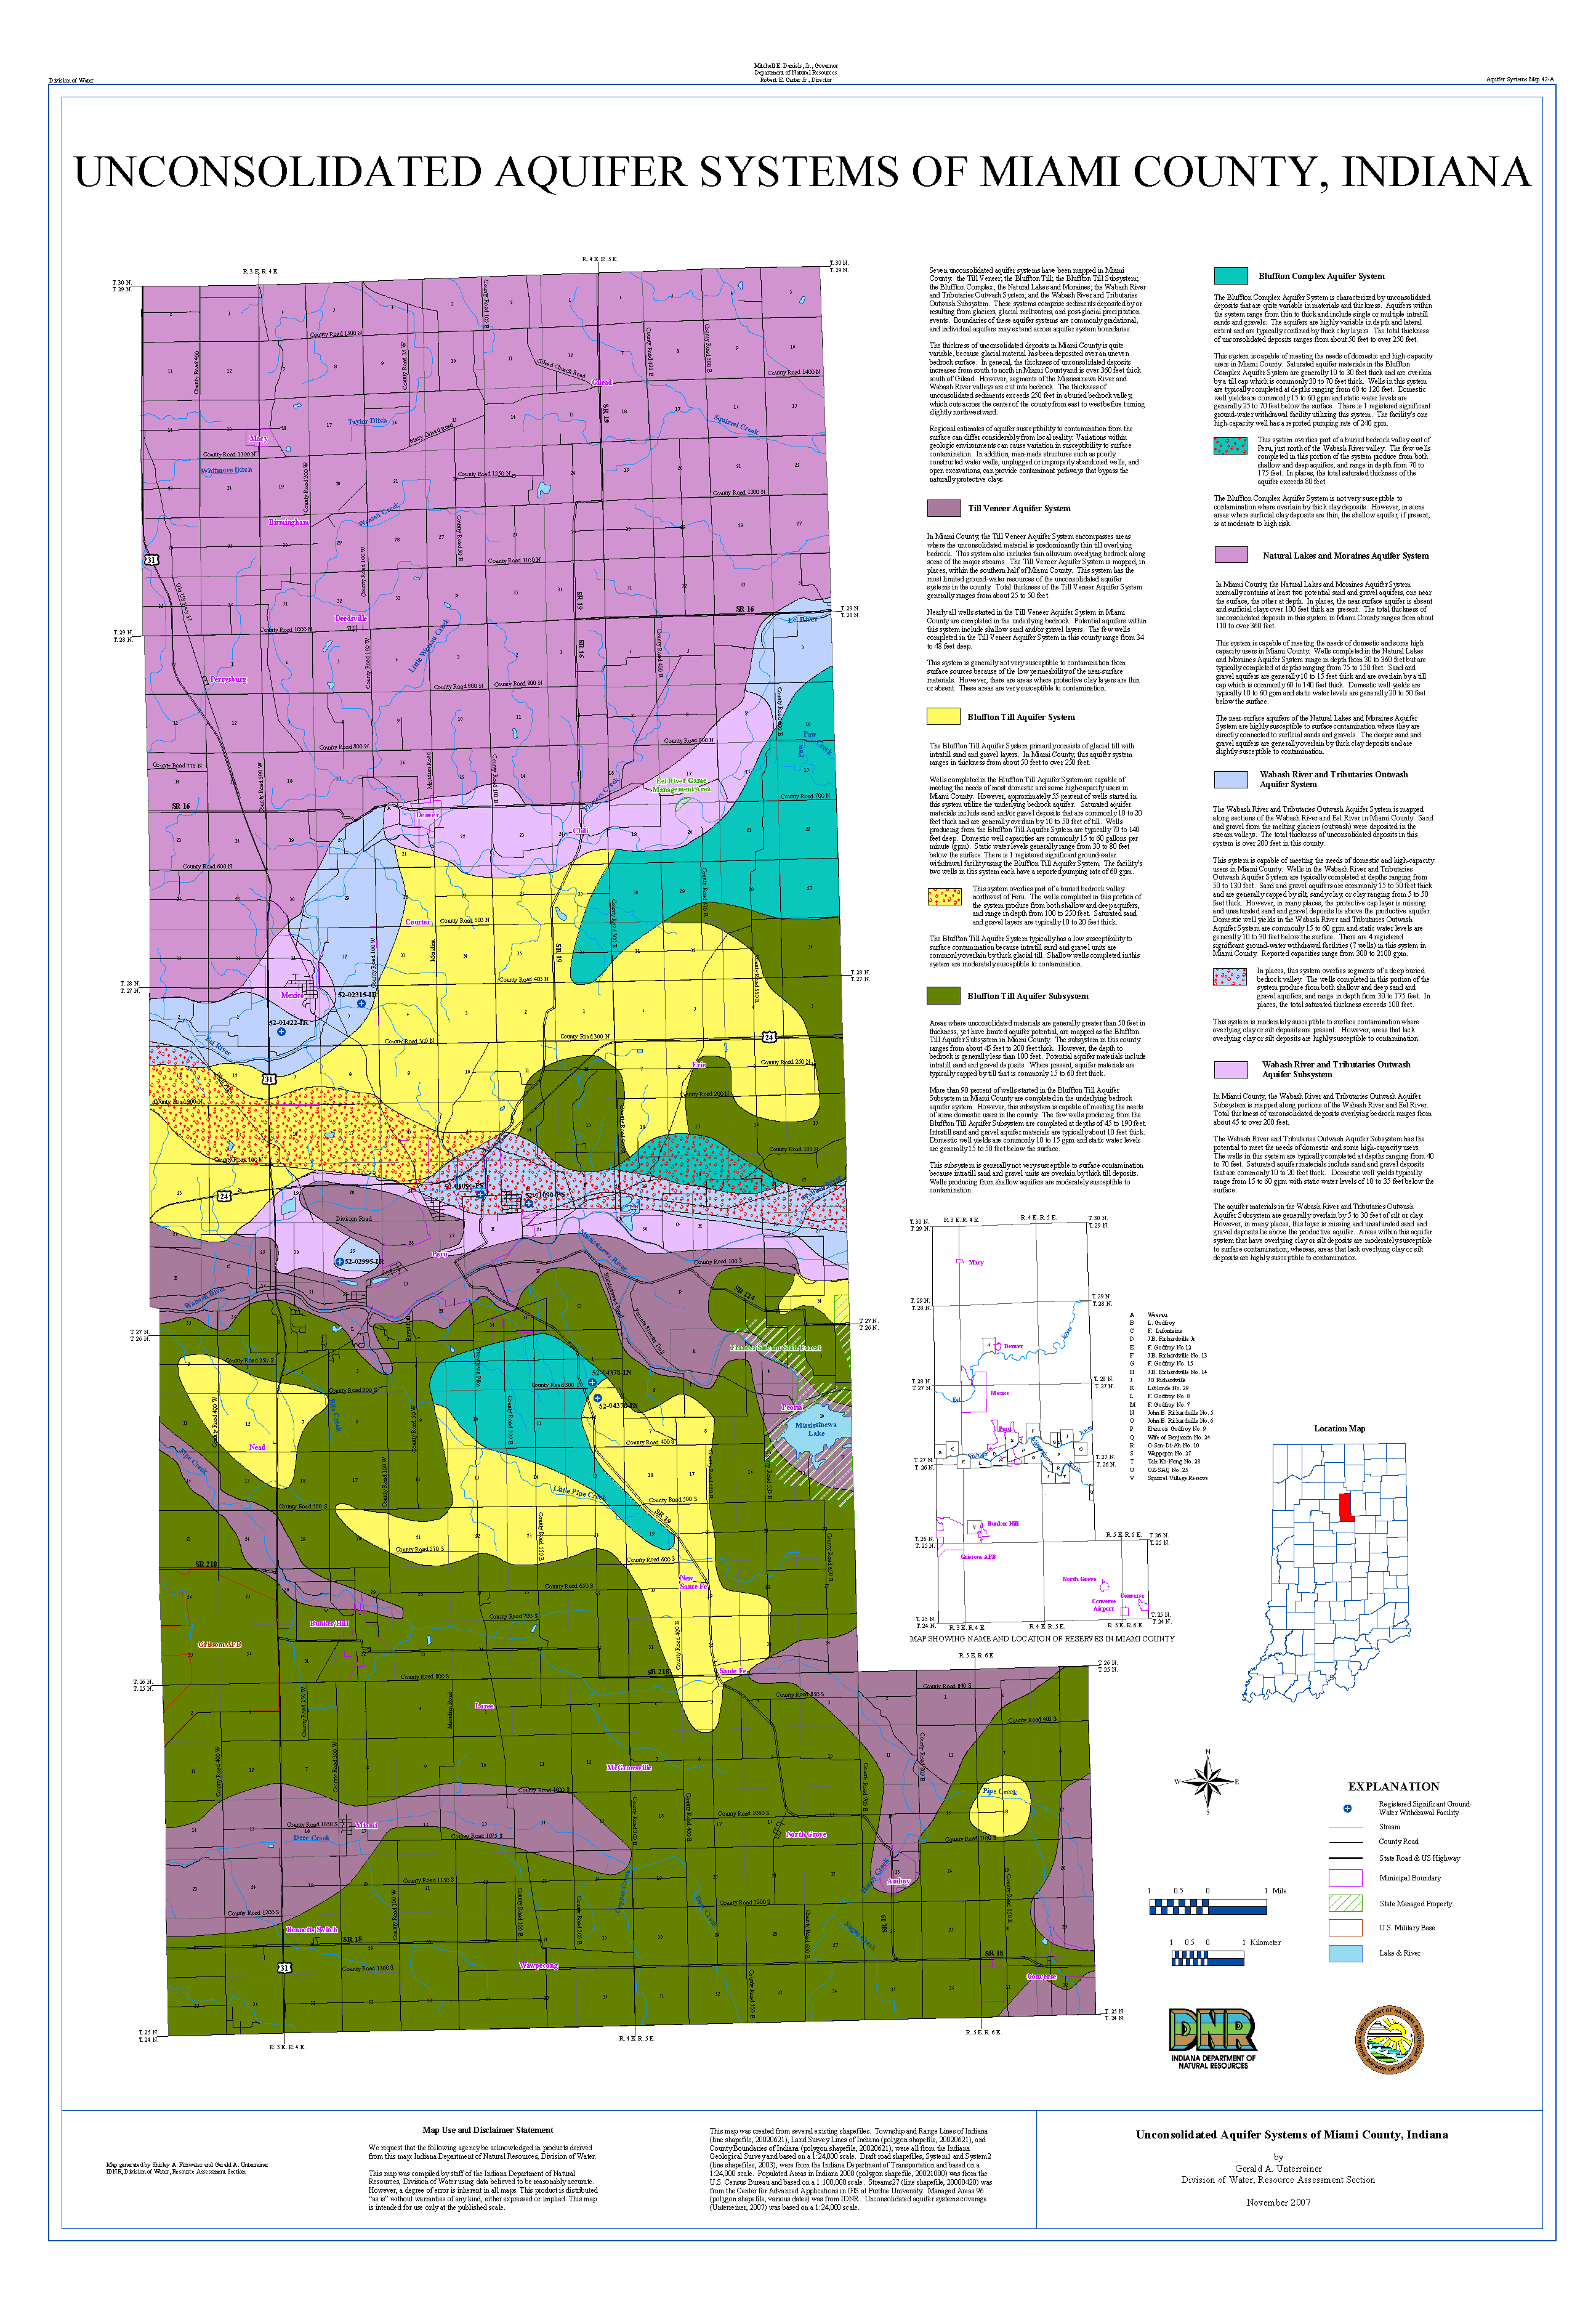 DNR Aquifer Systems Maps A  B Unconsolidated And Bedrock - Map of miami county indiana